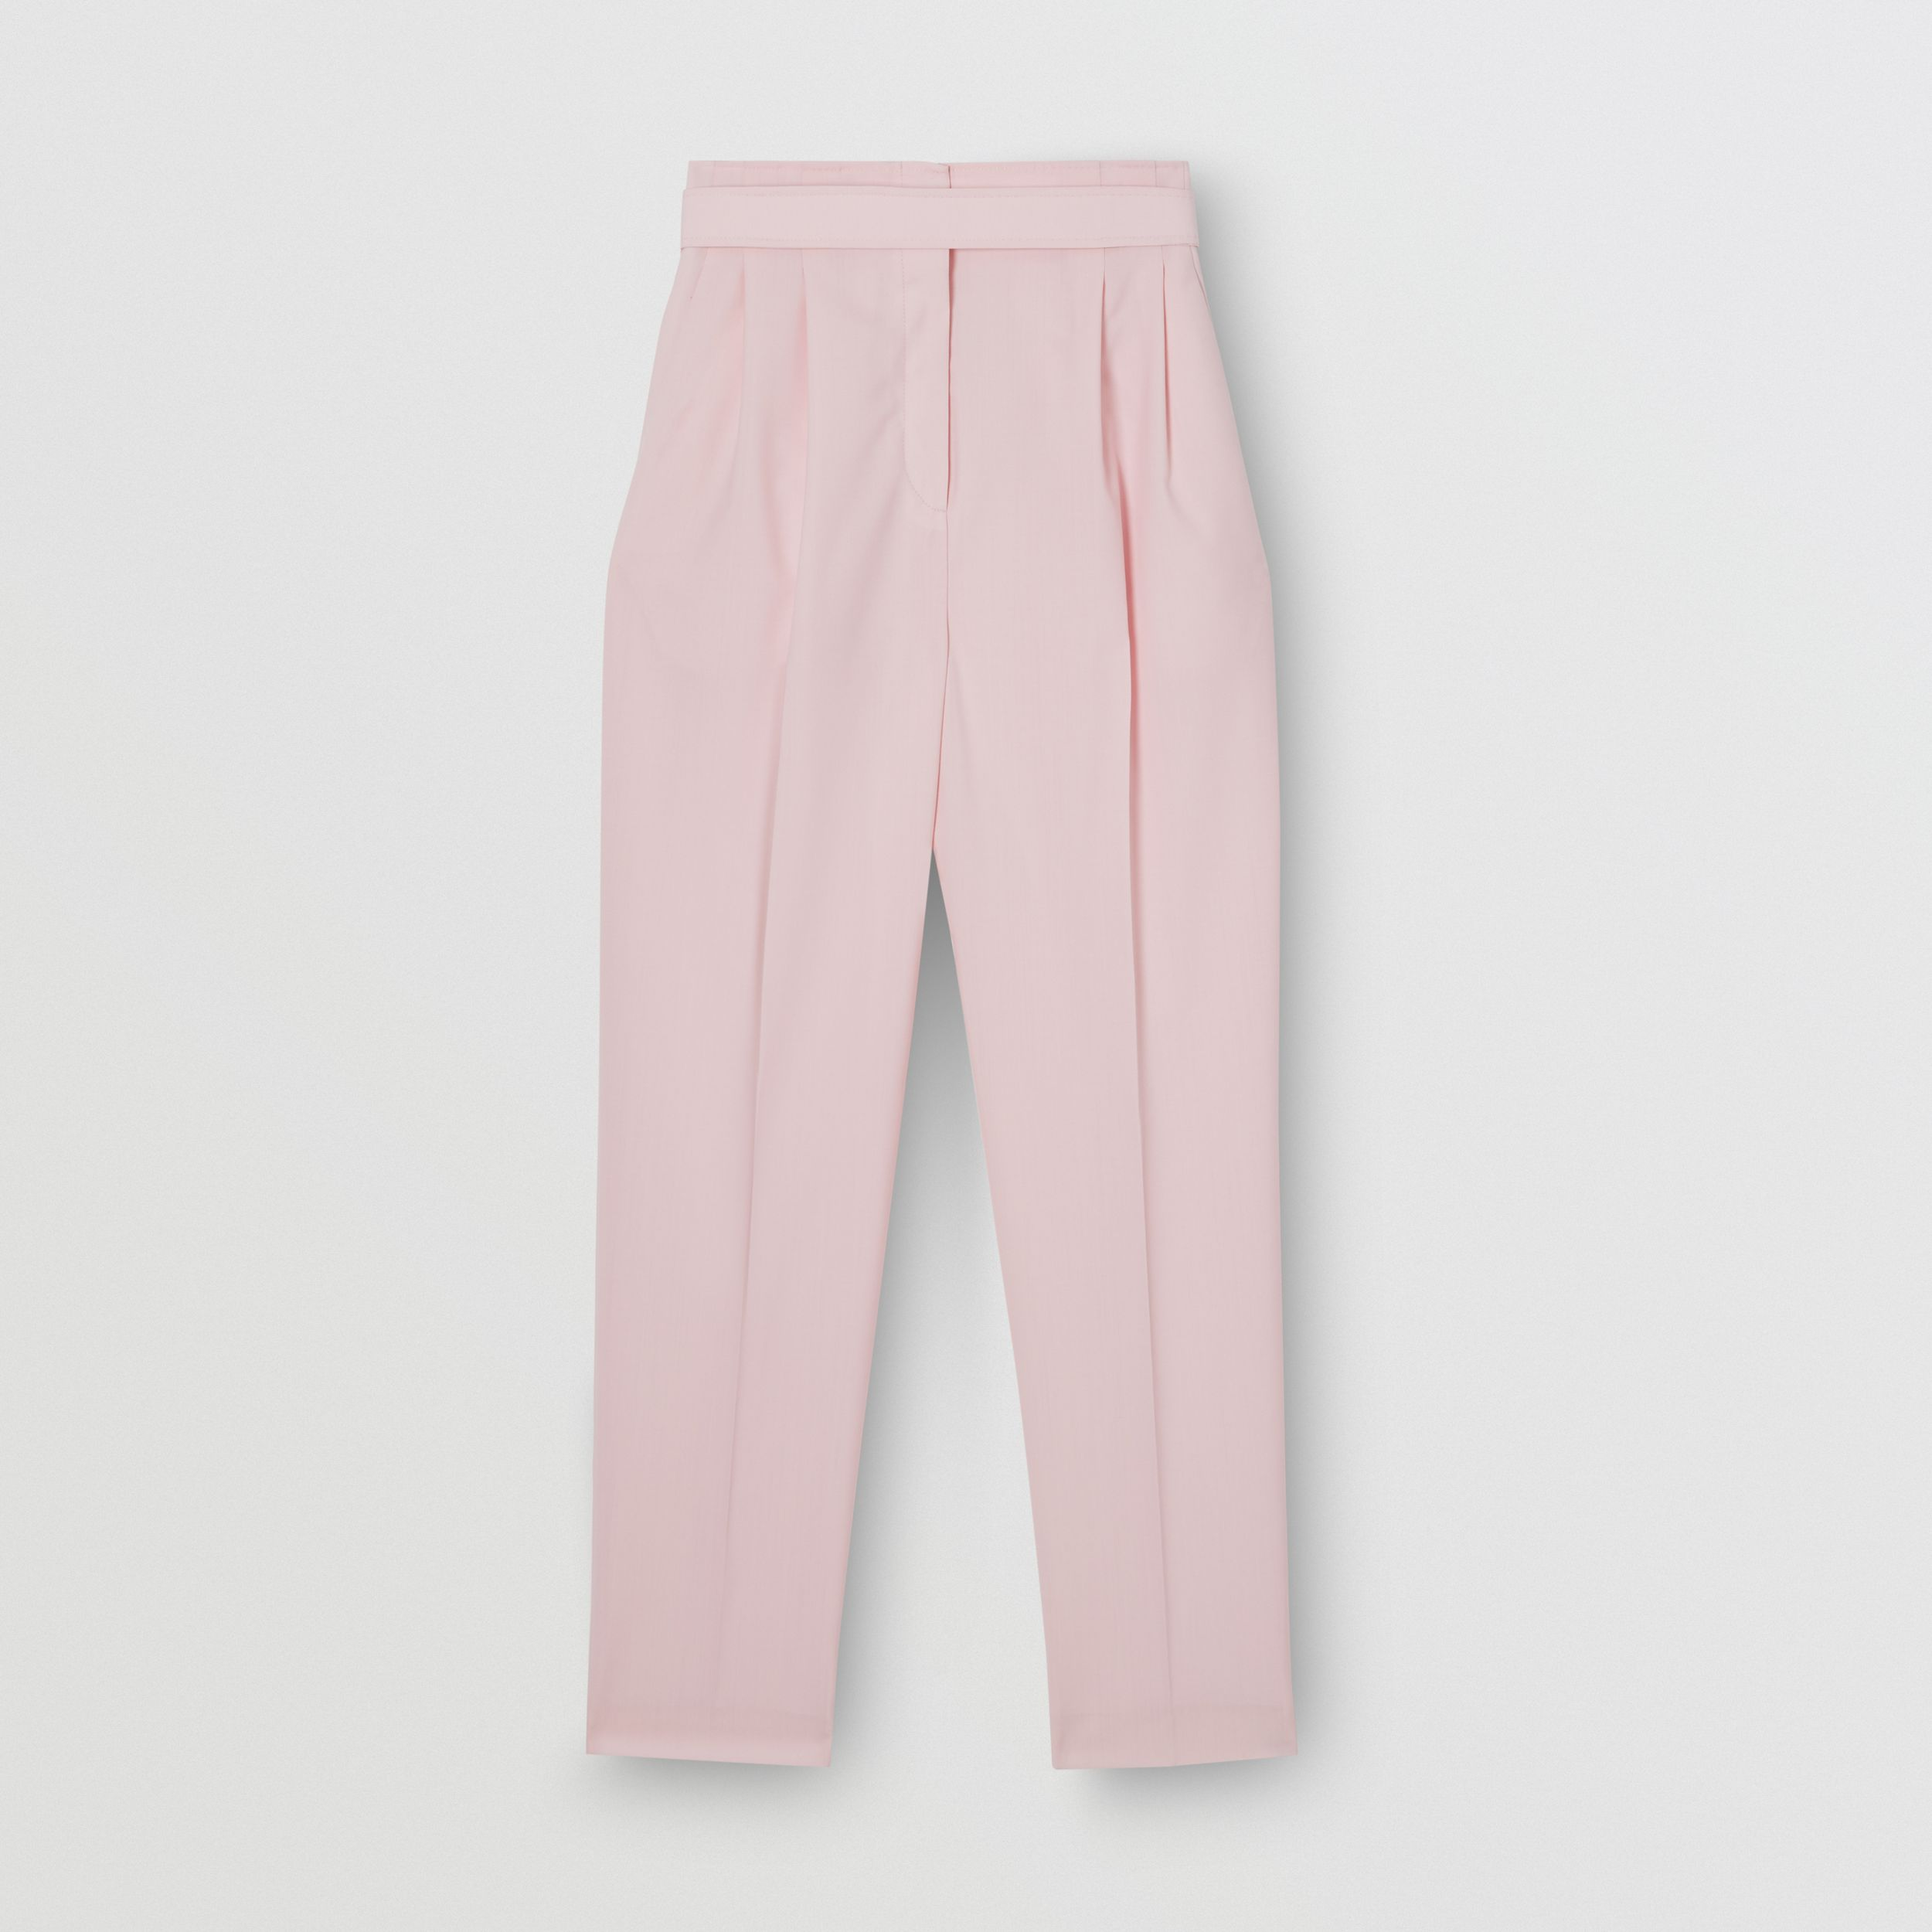 Cut-out Detail Wool Canvas Tailored Trousers in Pastel Pink - Women | Burberry - 2